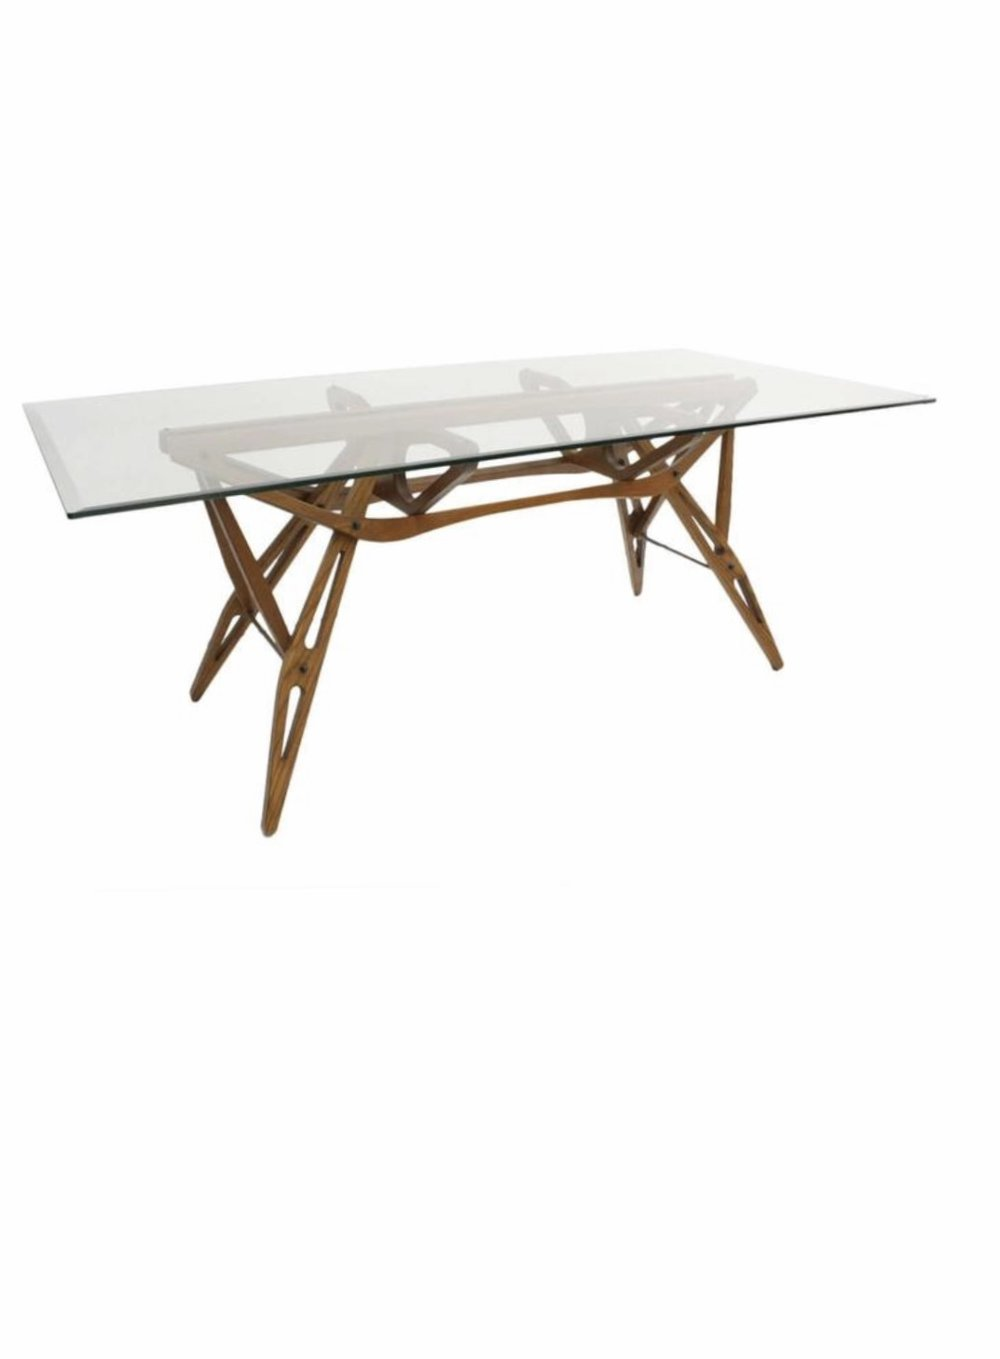 Sold zanotta carlo molino reale table rkade for Table 6 in as 3725